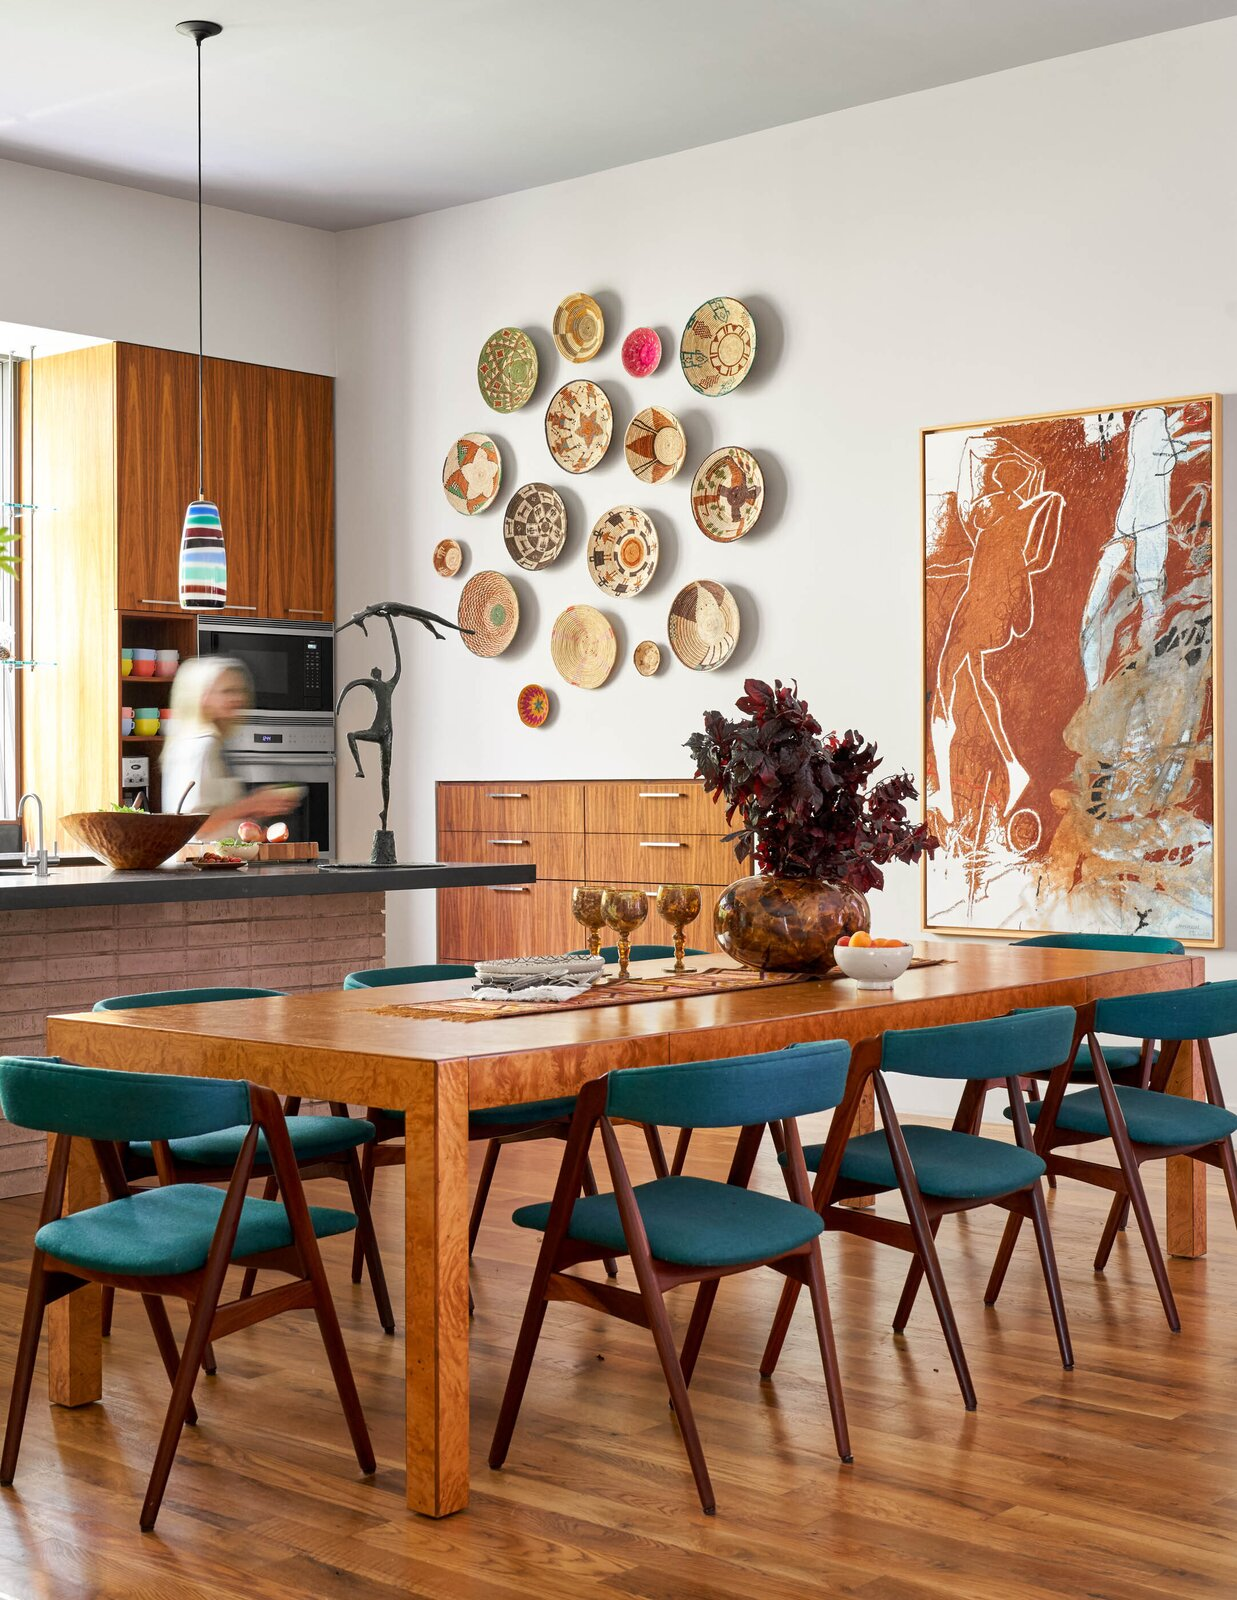 Kitchen and dining area in the River House 2 by Bentley Tibbs Architect